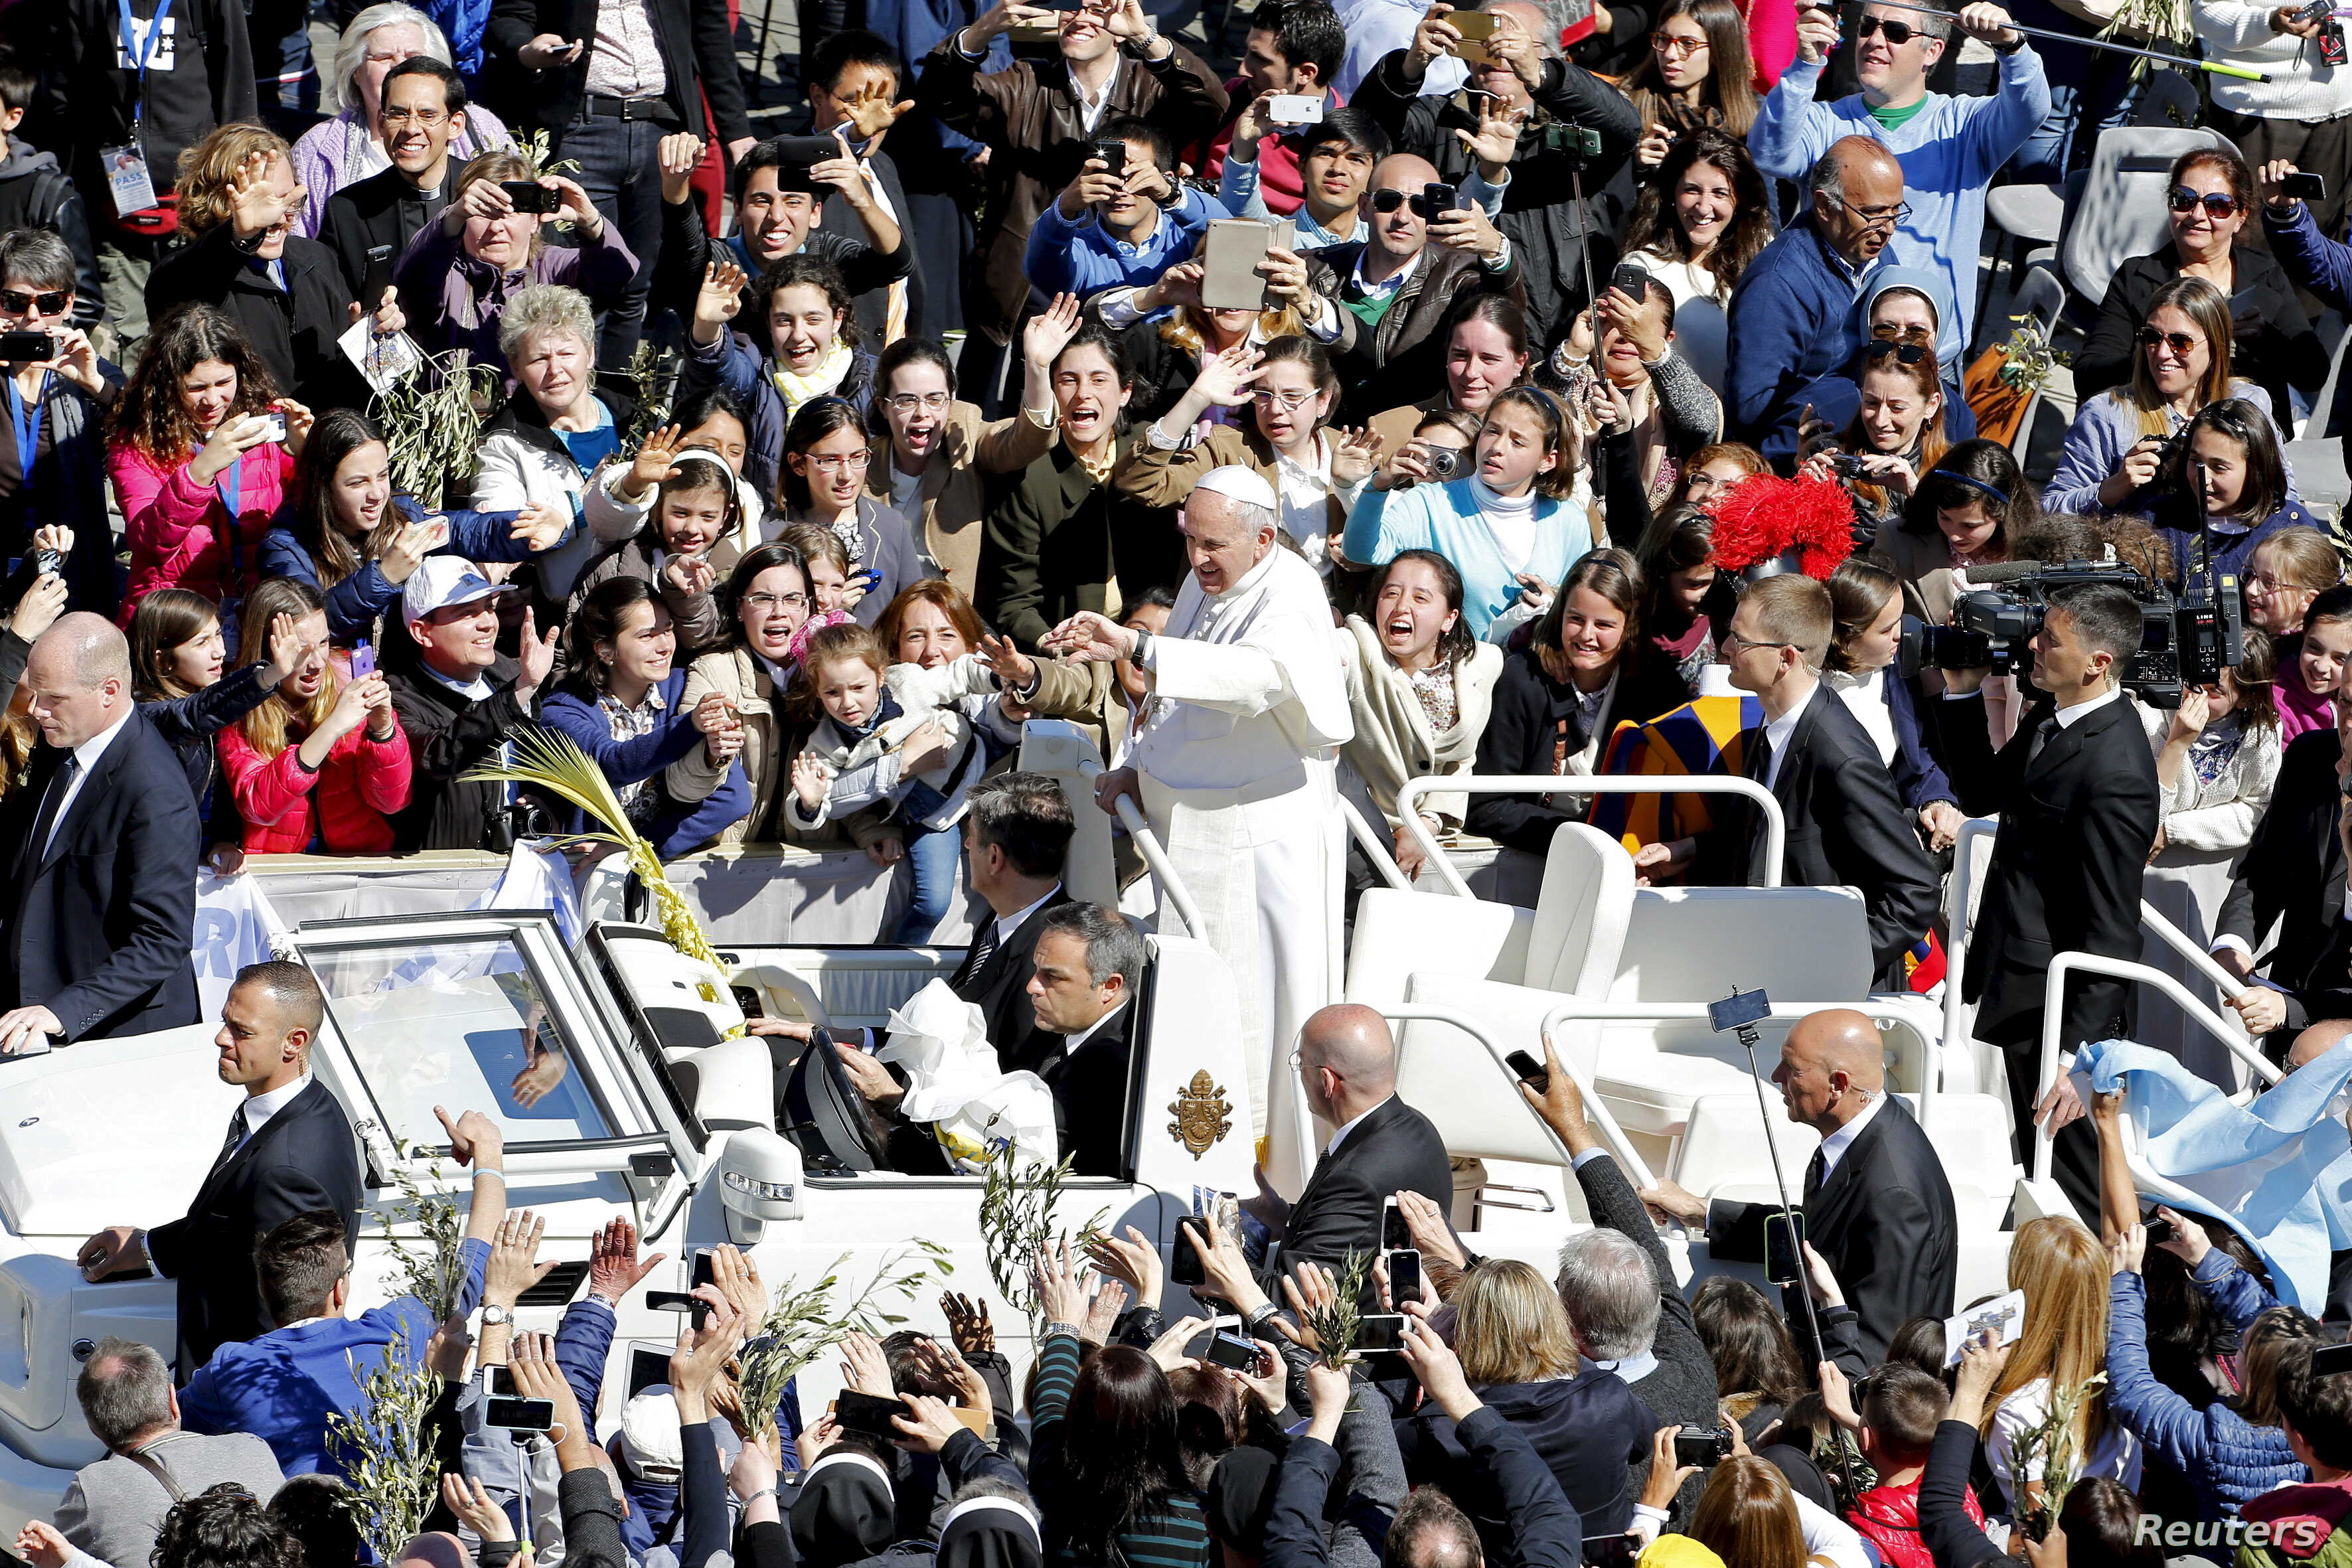 Pope Francis waves at the end of the Palm Sunday mass at Saint Peter's Square at the Vatican, March 29, 2015.